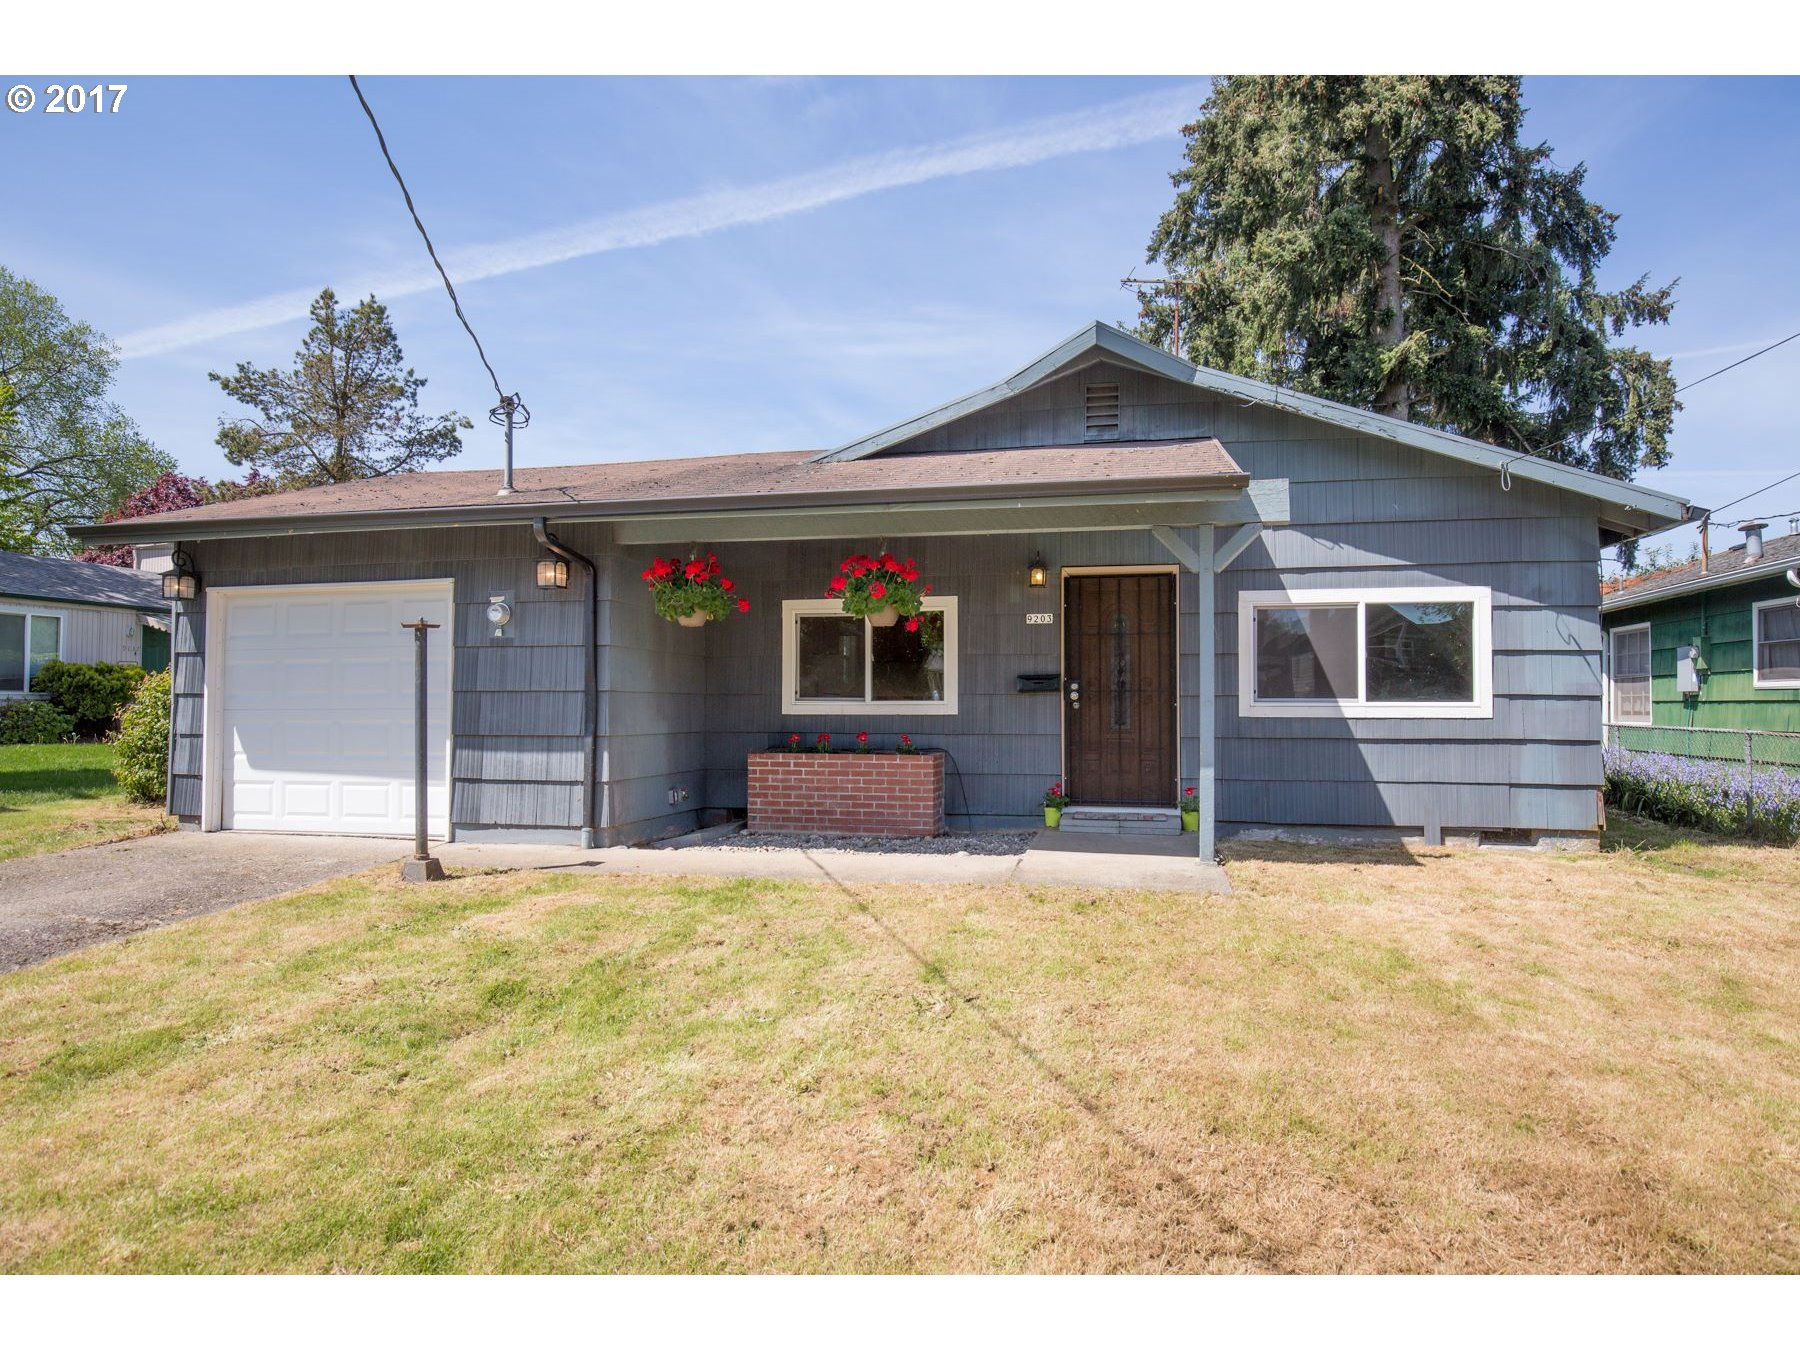 What's not to love? This charming 1 Level home just had a facelift! New Roof, Chimney, plumbing, hvac, interior paint & new counter tops! It is the PERFECT starter home! Just minutes away from the University of Portland, walking trails and has easy access to the highway!Listing agent to offer Home Warranty for 1 year~